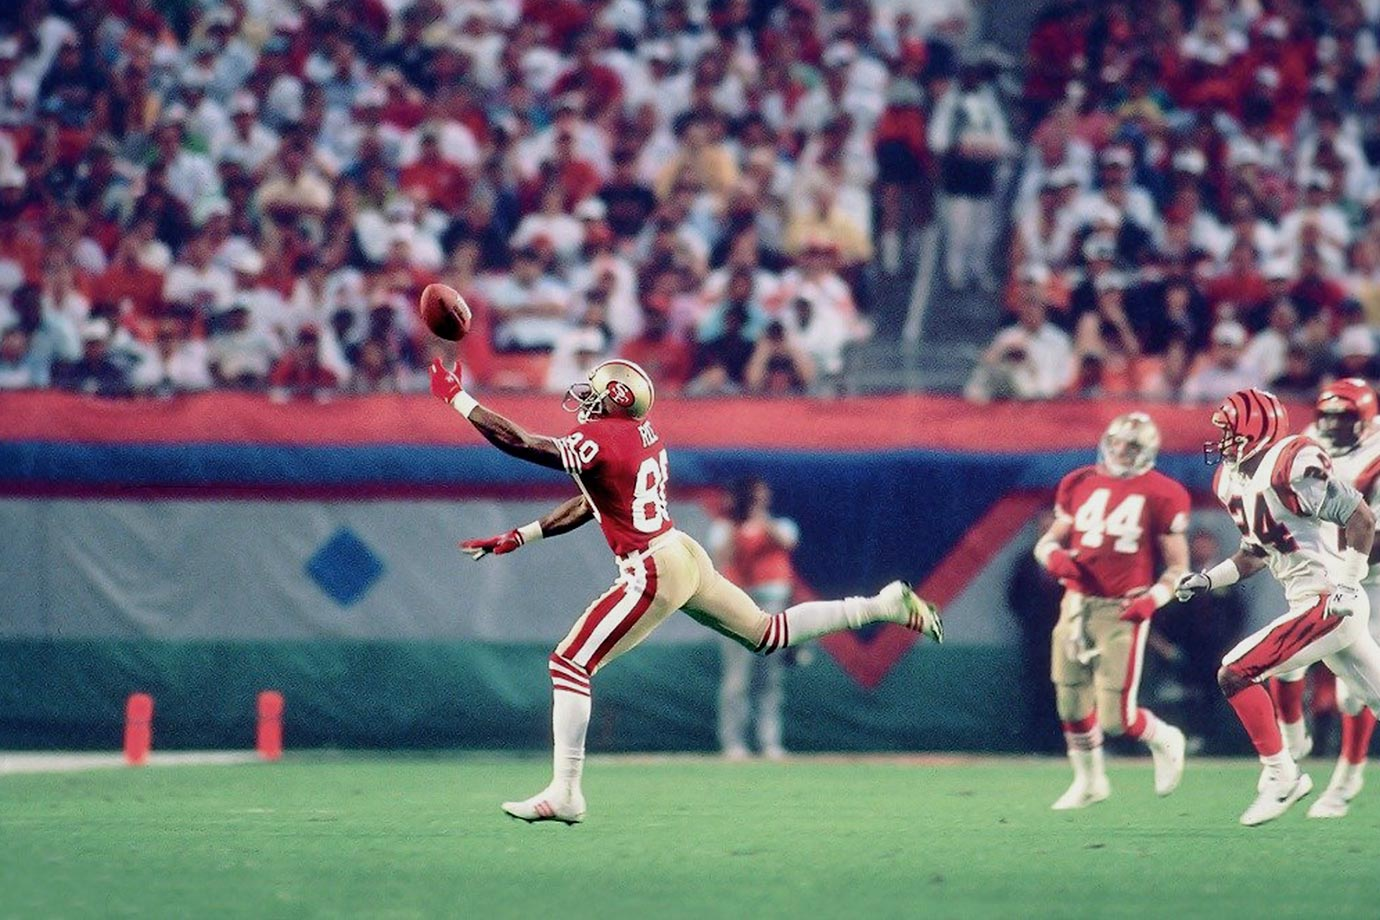 Jan. 22, 1989 — Super Bowl XXIII (San Francisco 49ers vs. Cincinnati Bengals)